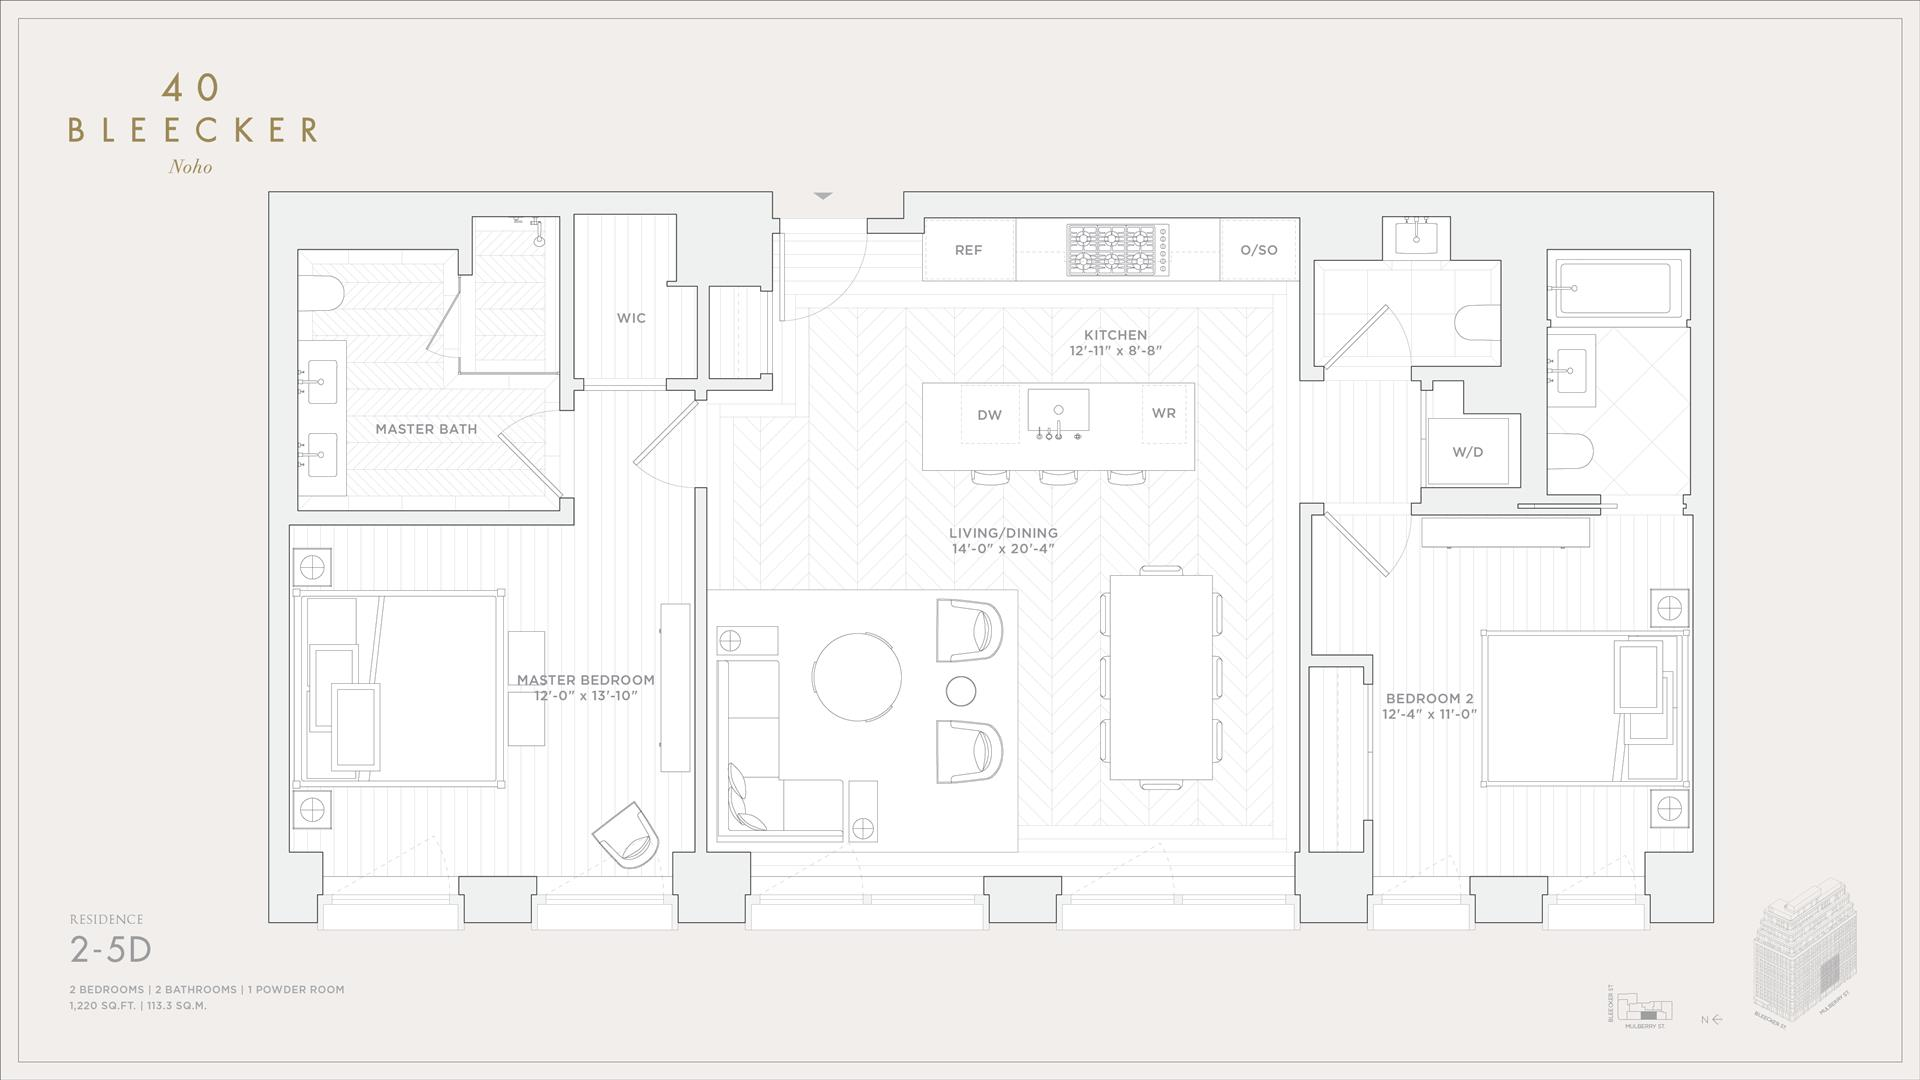 Floor plan of 40 Bleecker Street, 4D - NoHo, New York